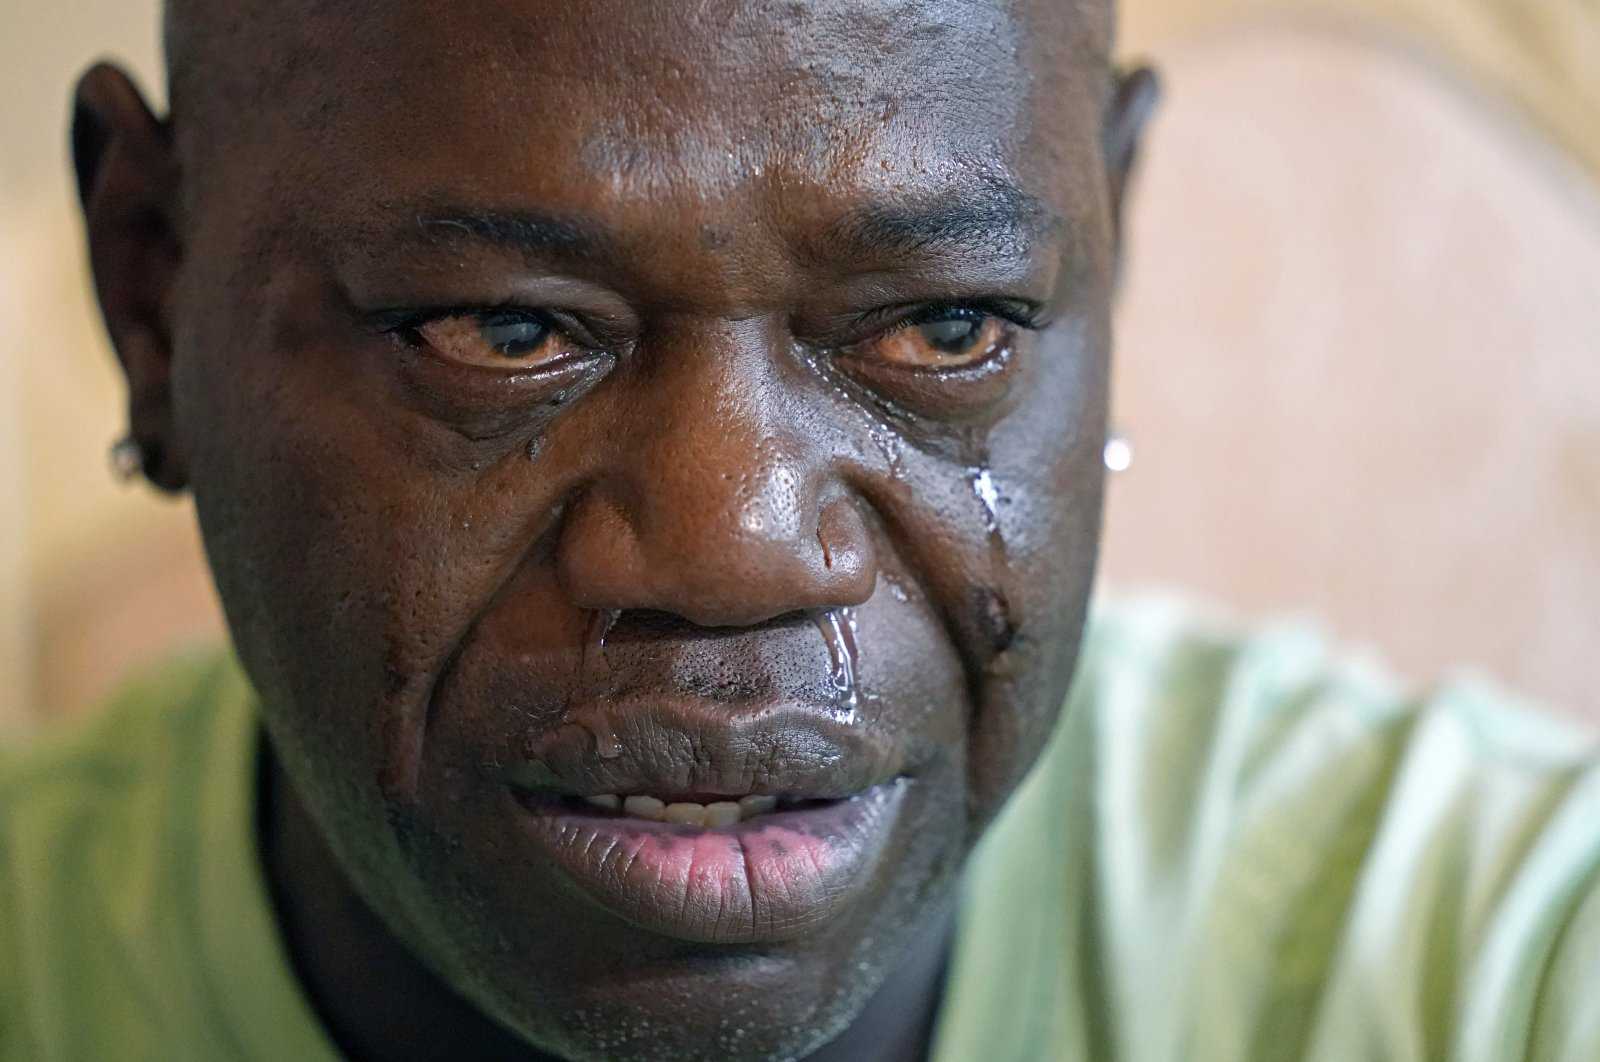 Aaron Larry Bowman cries during an interview at his attorney's office in Monroe, Lousiana, U.S., Aug. 5, 2021. (AP Photo)